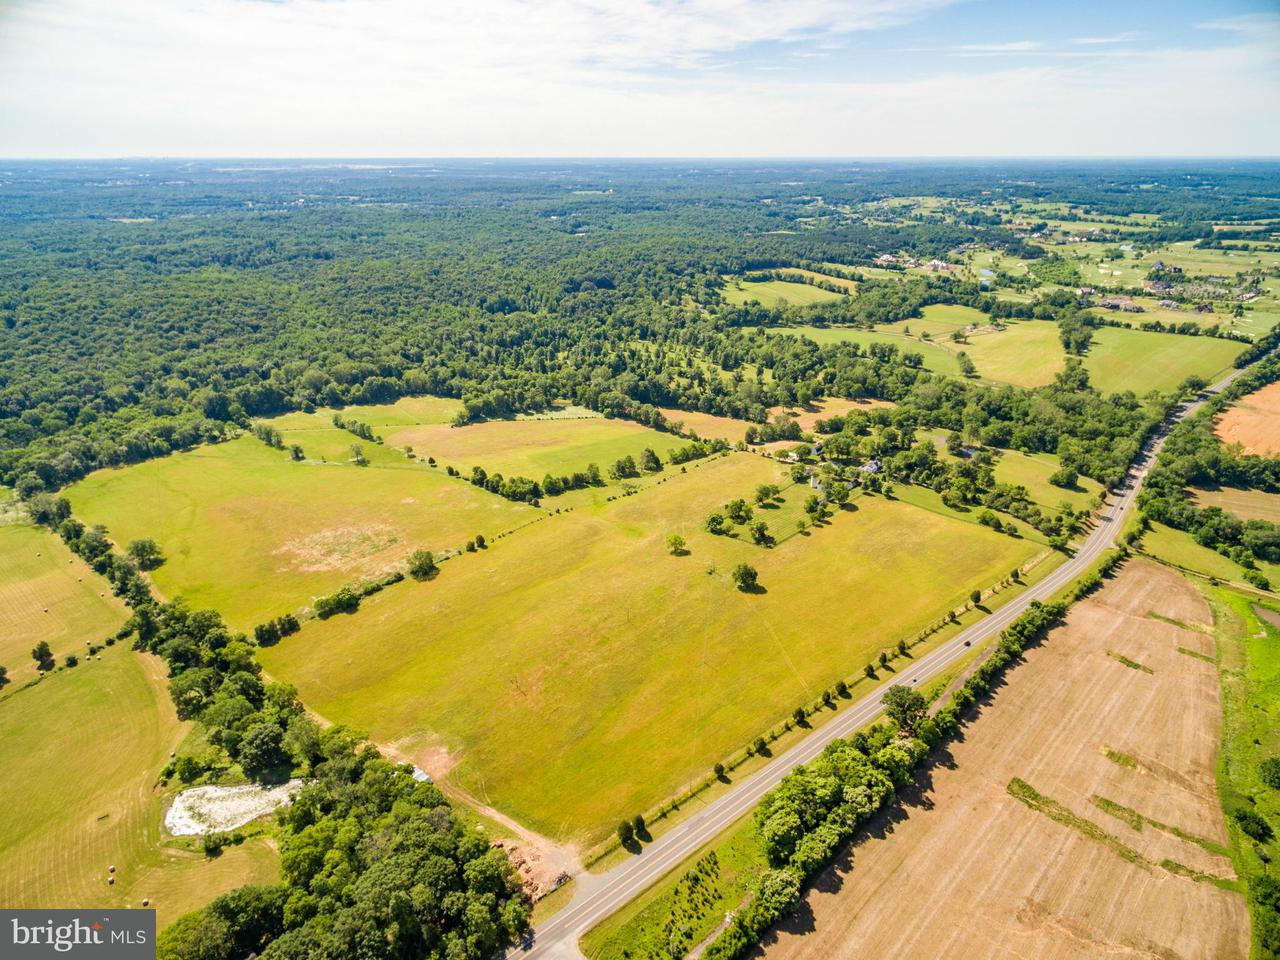 Land for Sale at TAMWORTH FARM LANE TAMWORTH FARM LANE Aldie, Virginia 20105 United States